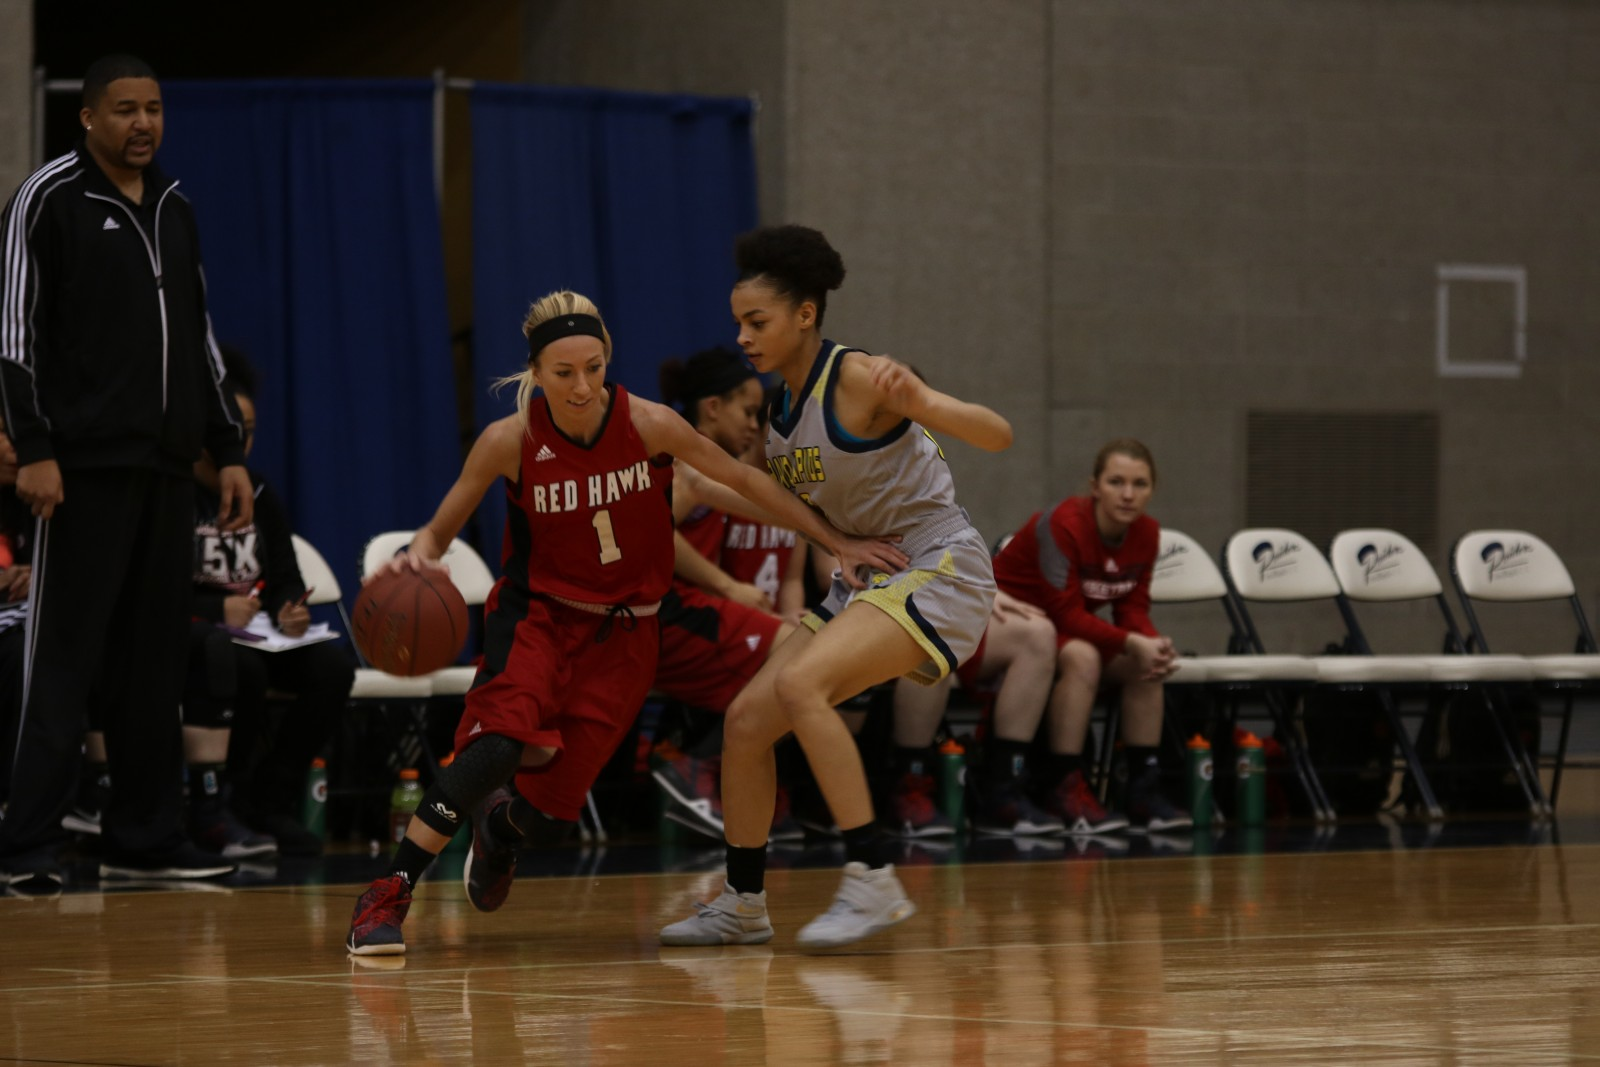 Freshman Guard, #23, Allazae Lloyd guarding Lake Michigan Sophomore Guard, #1, Kelsey Kinder.